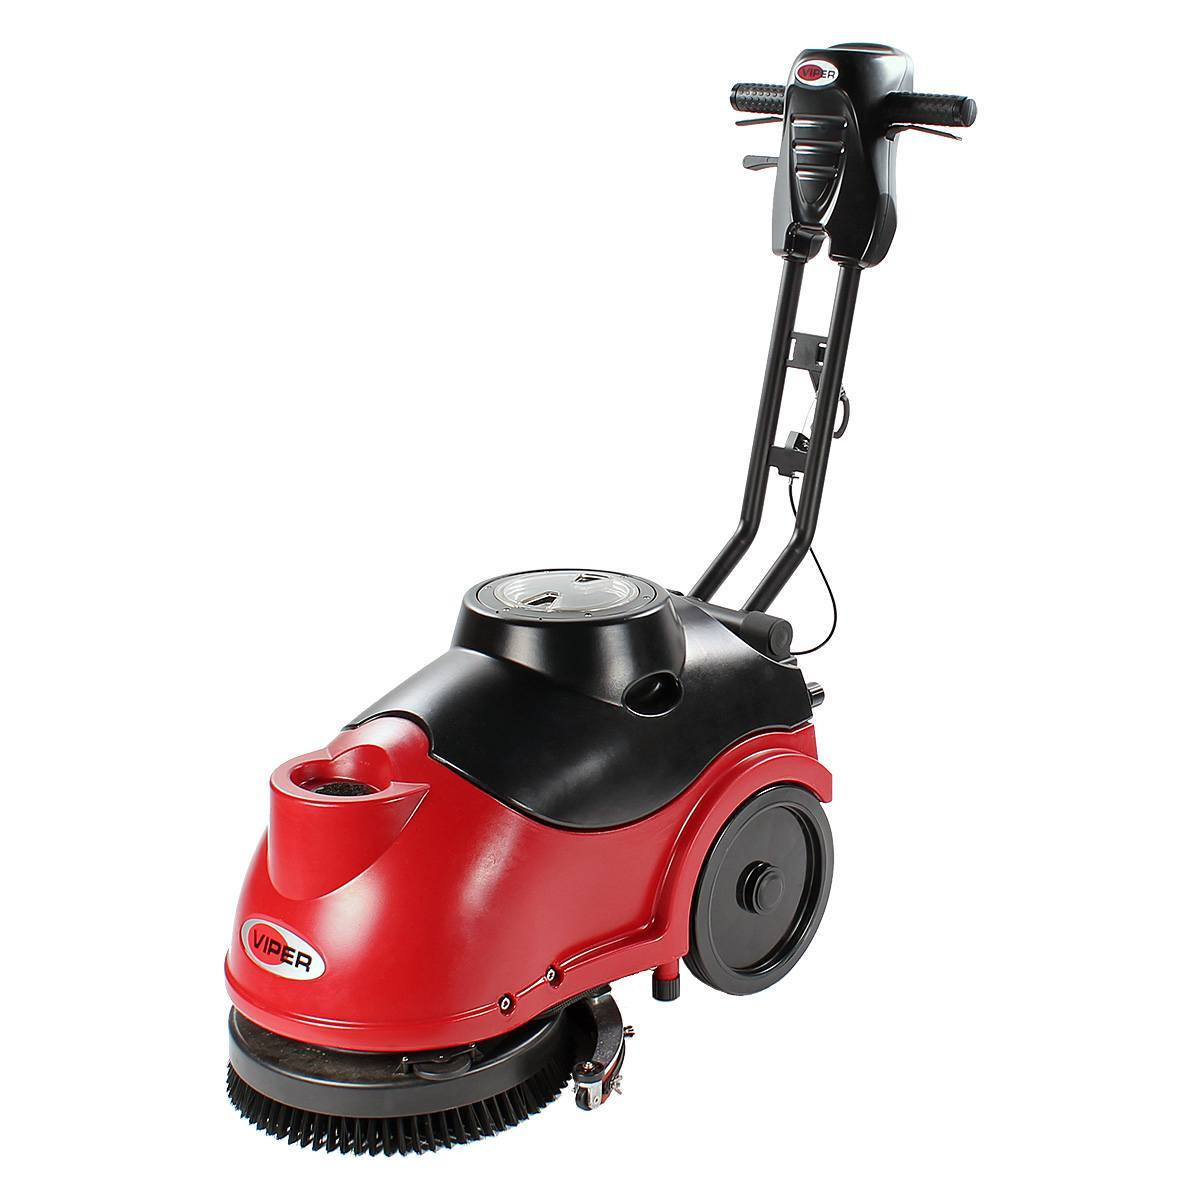 Viper Fang Compact Battery Powered Automatic Floor Scrubber